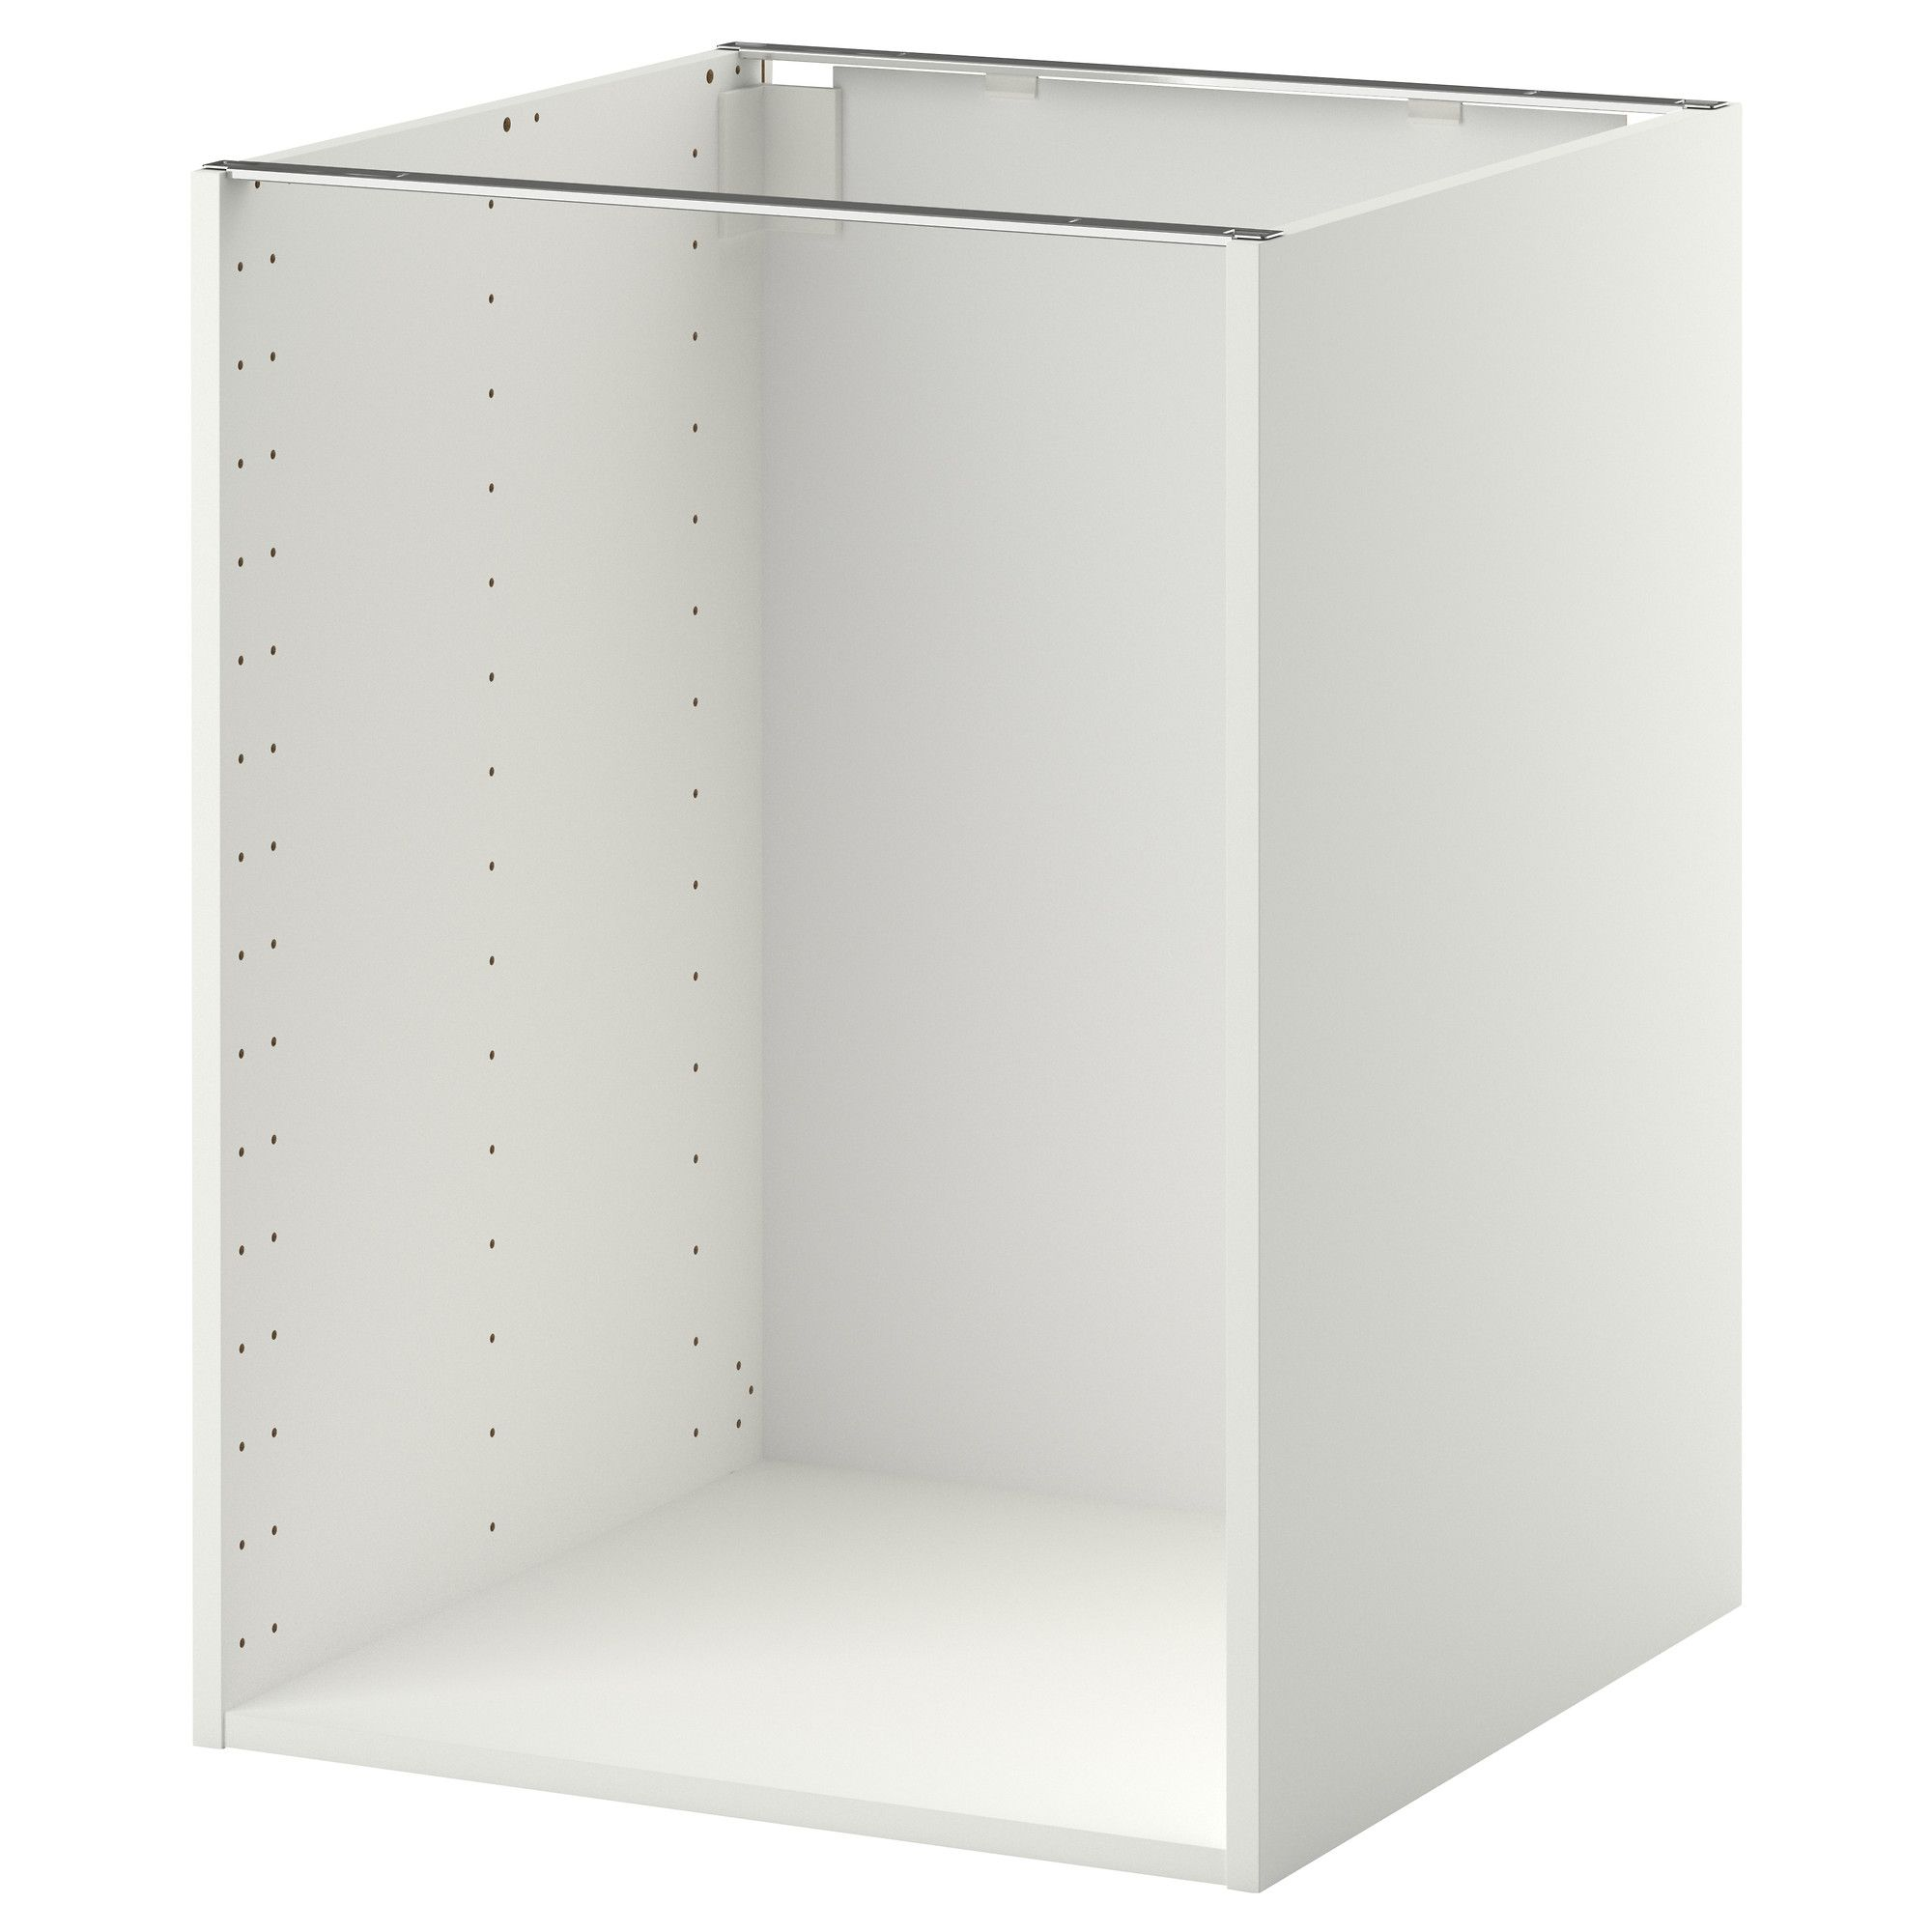 Element Haut Cuisine Ikea Metod Base Cabinet With Wire Baskets White Voxtorp High Gloss